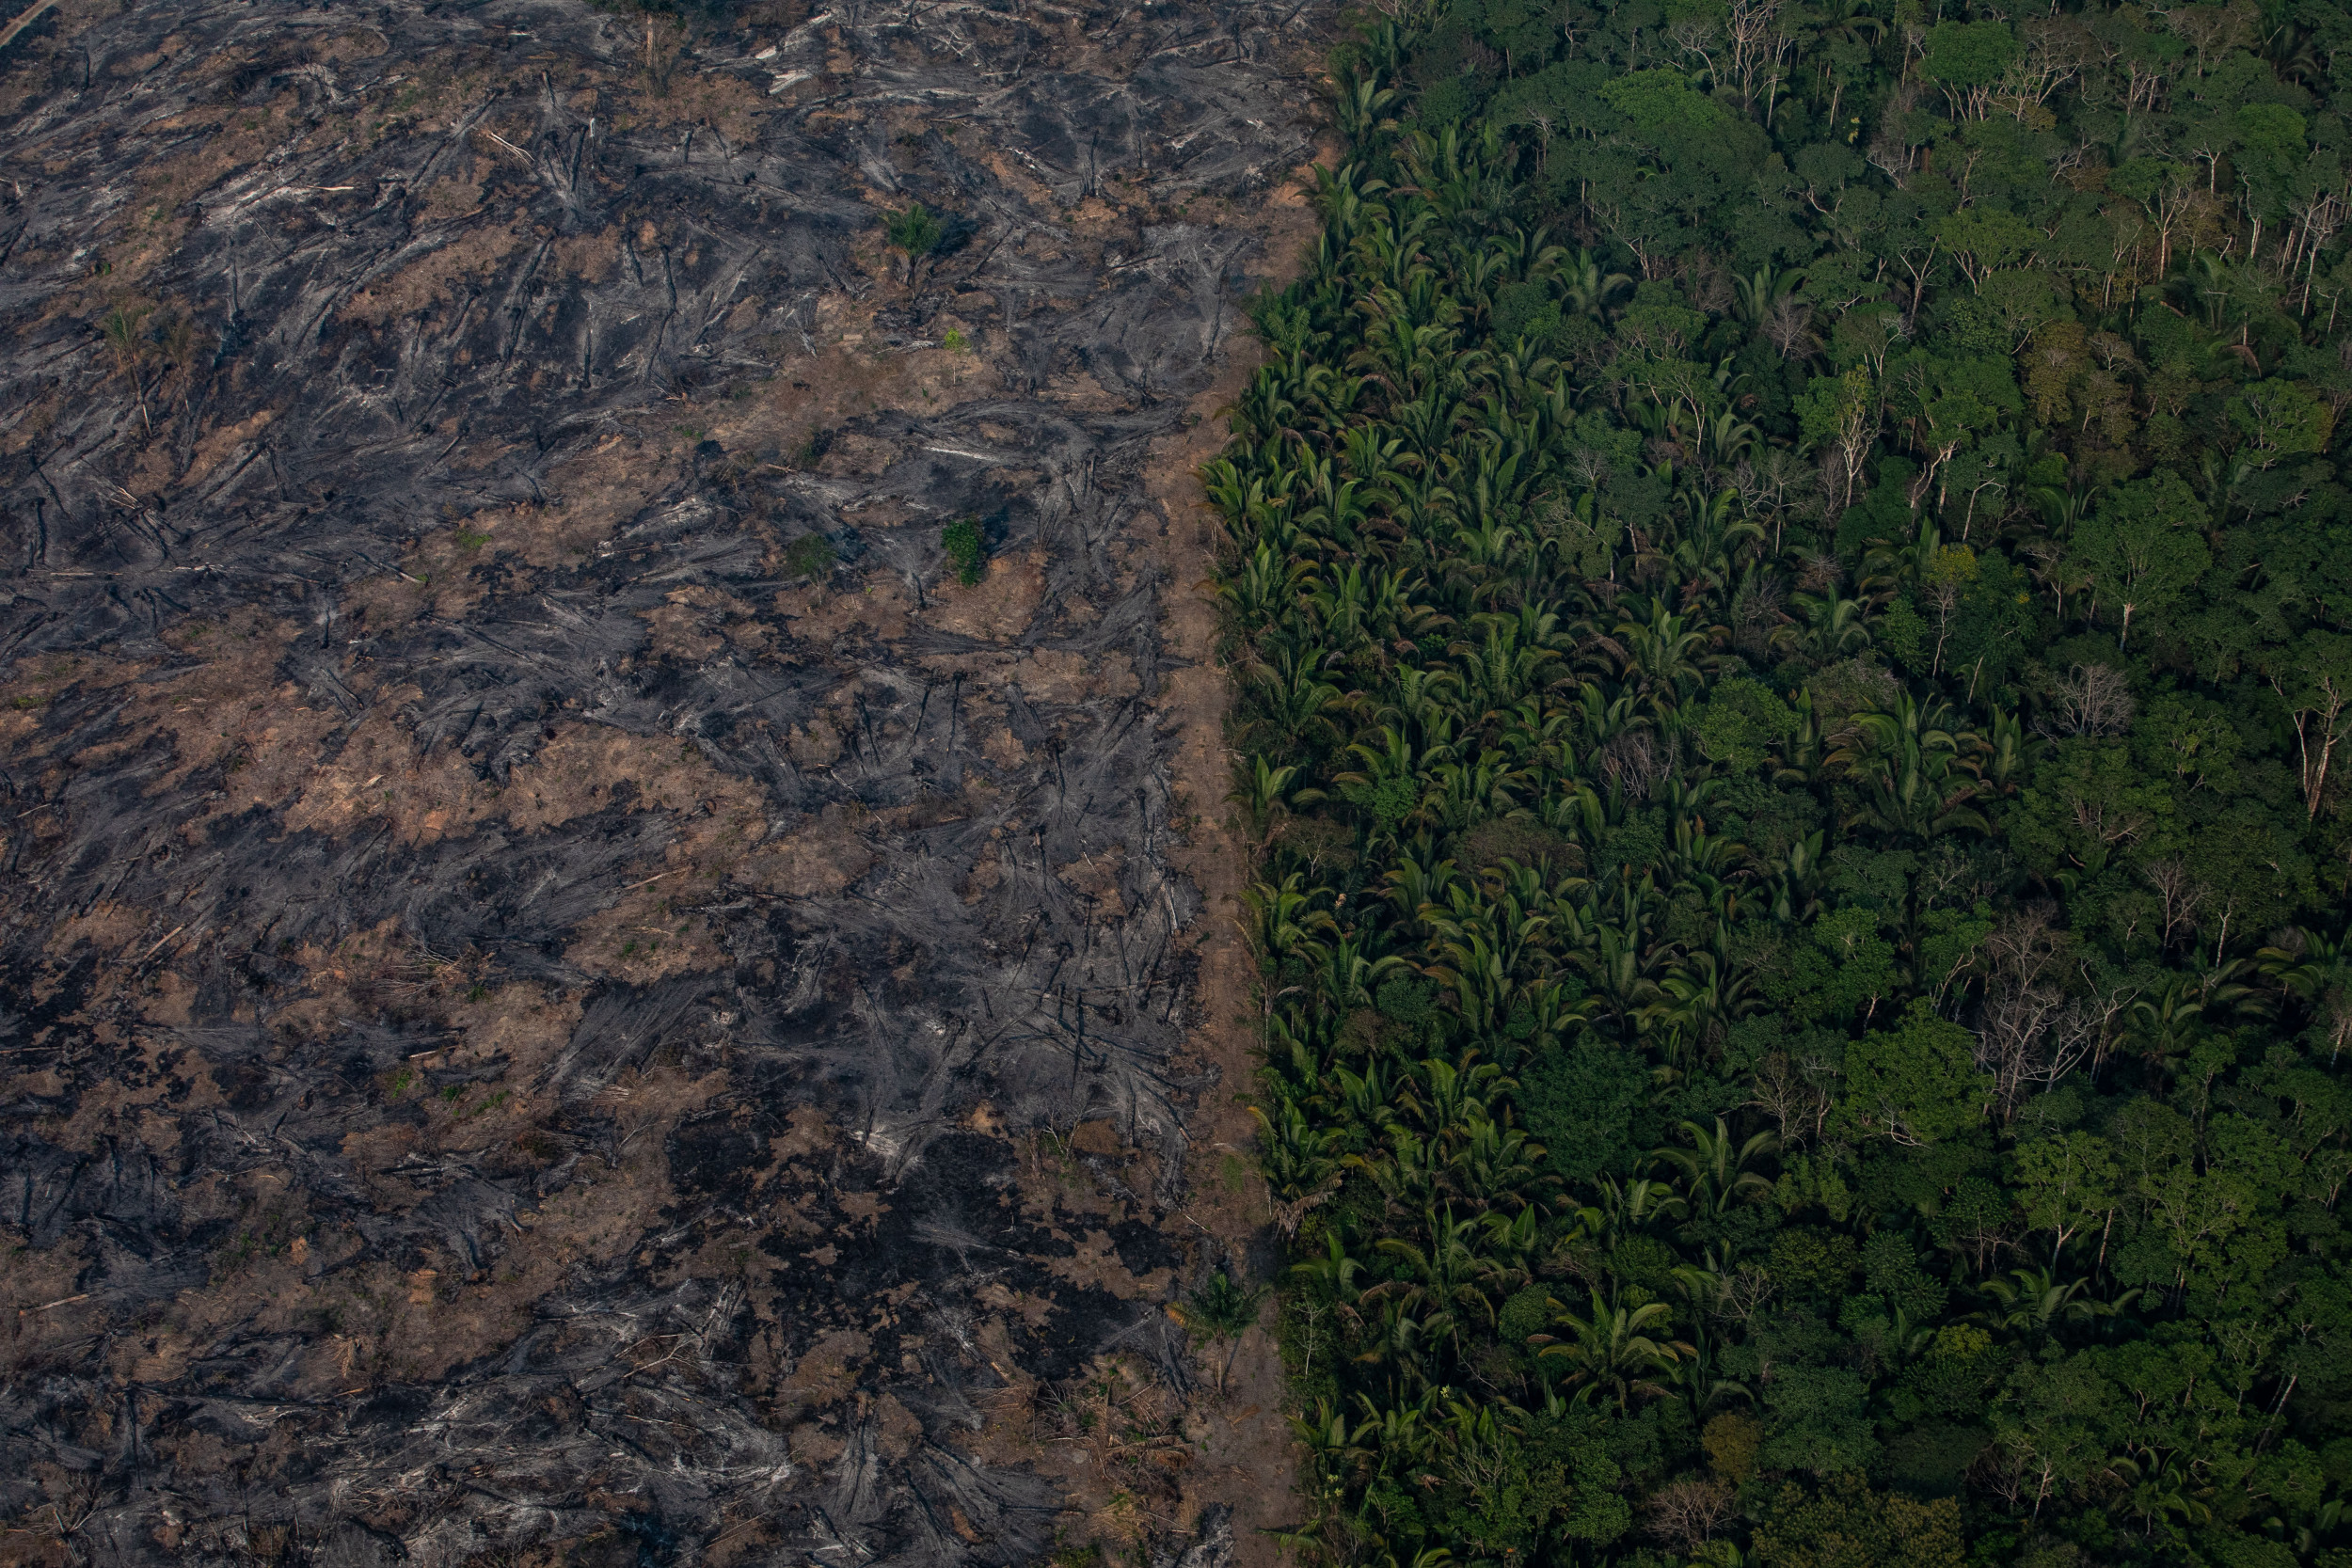 Climate Change Could Intensify Amazon Forest Fires Turning It